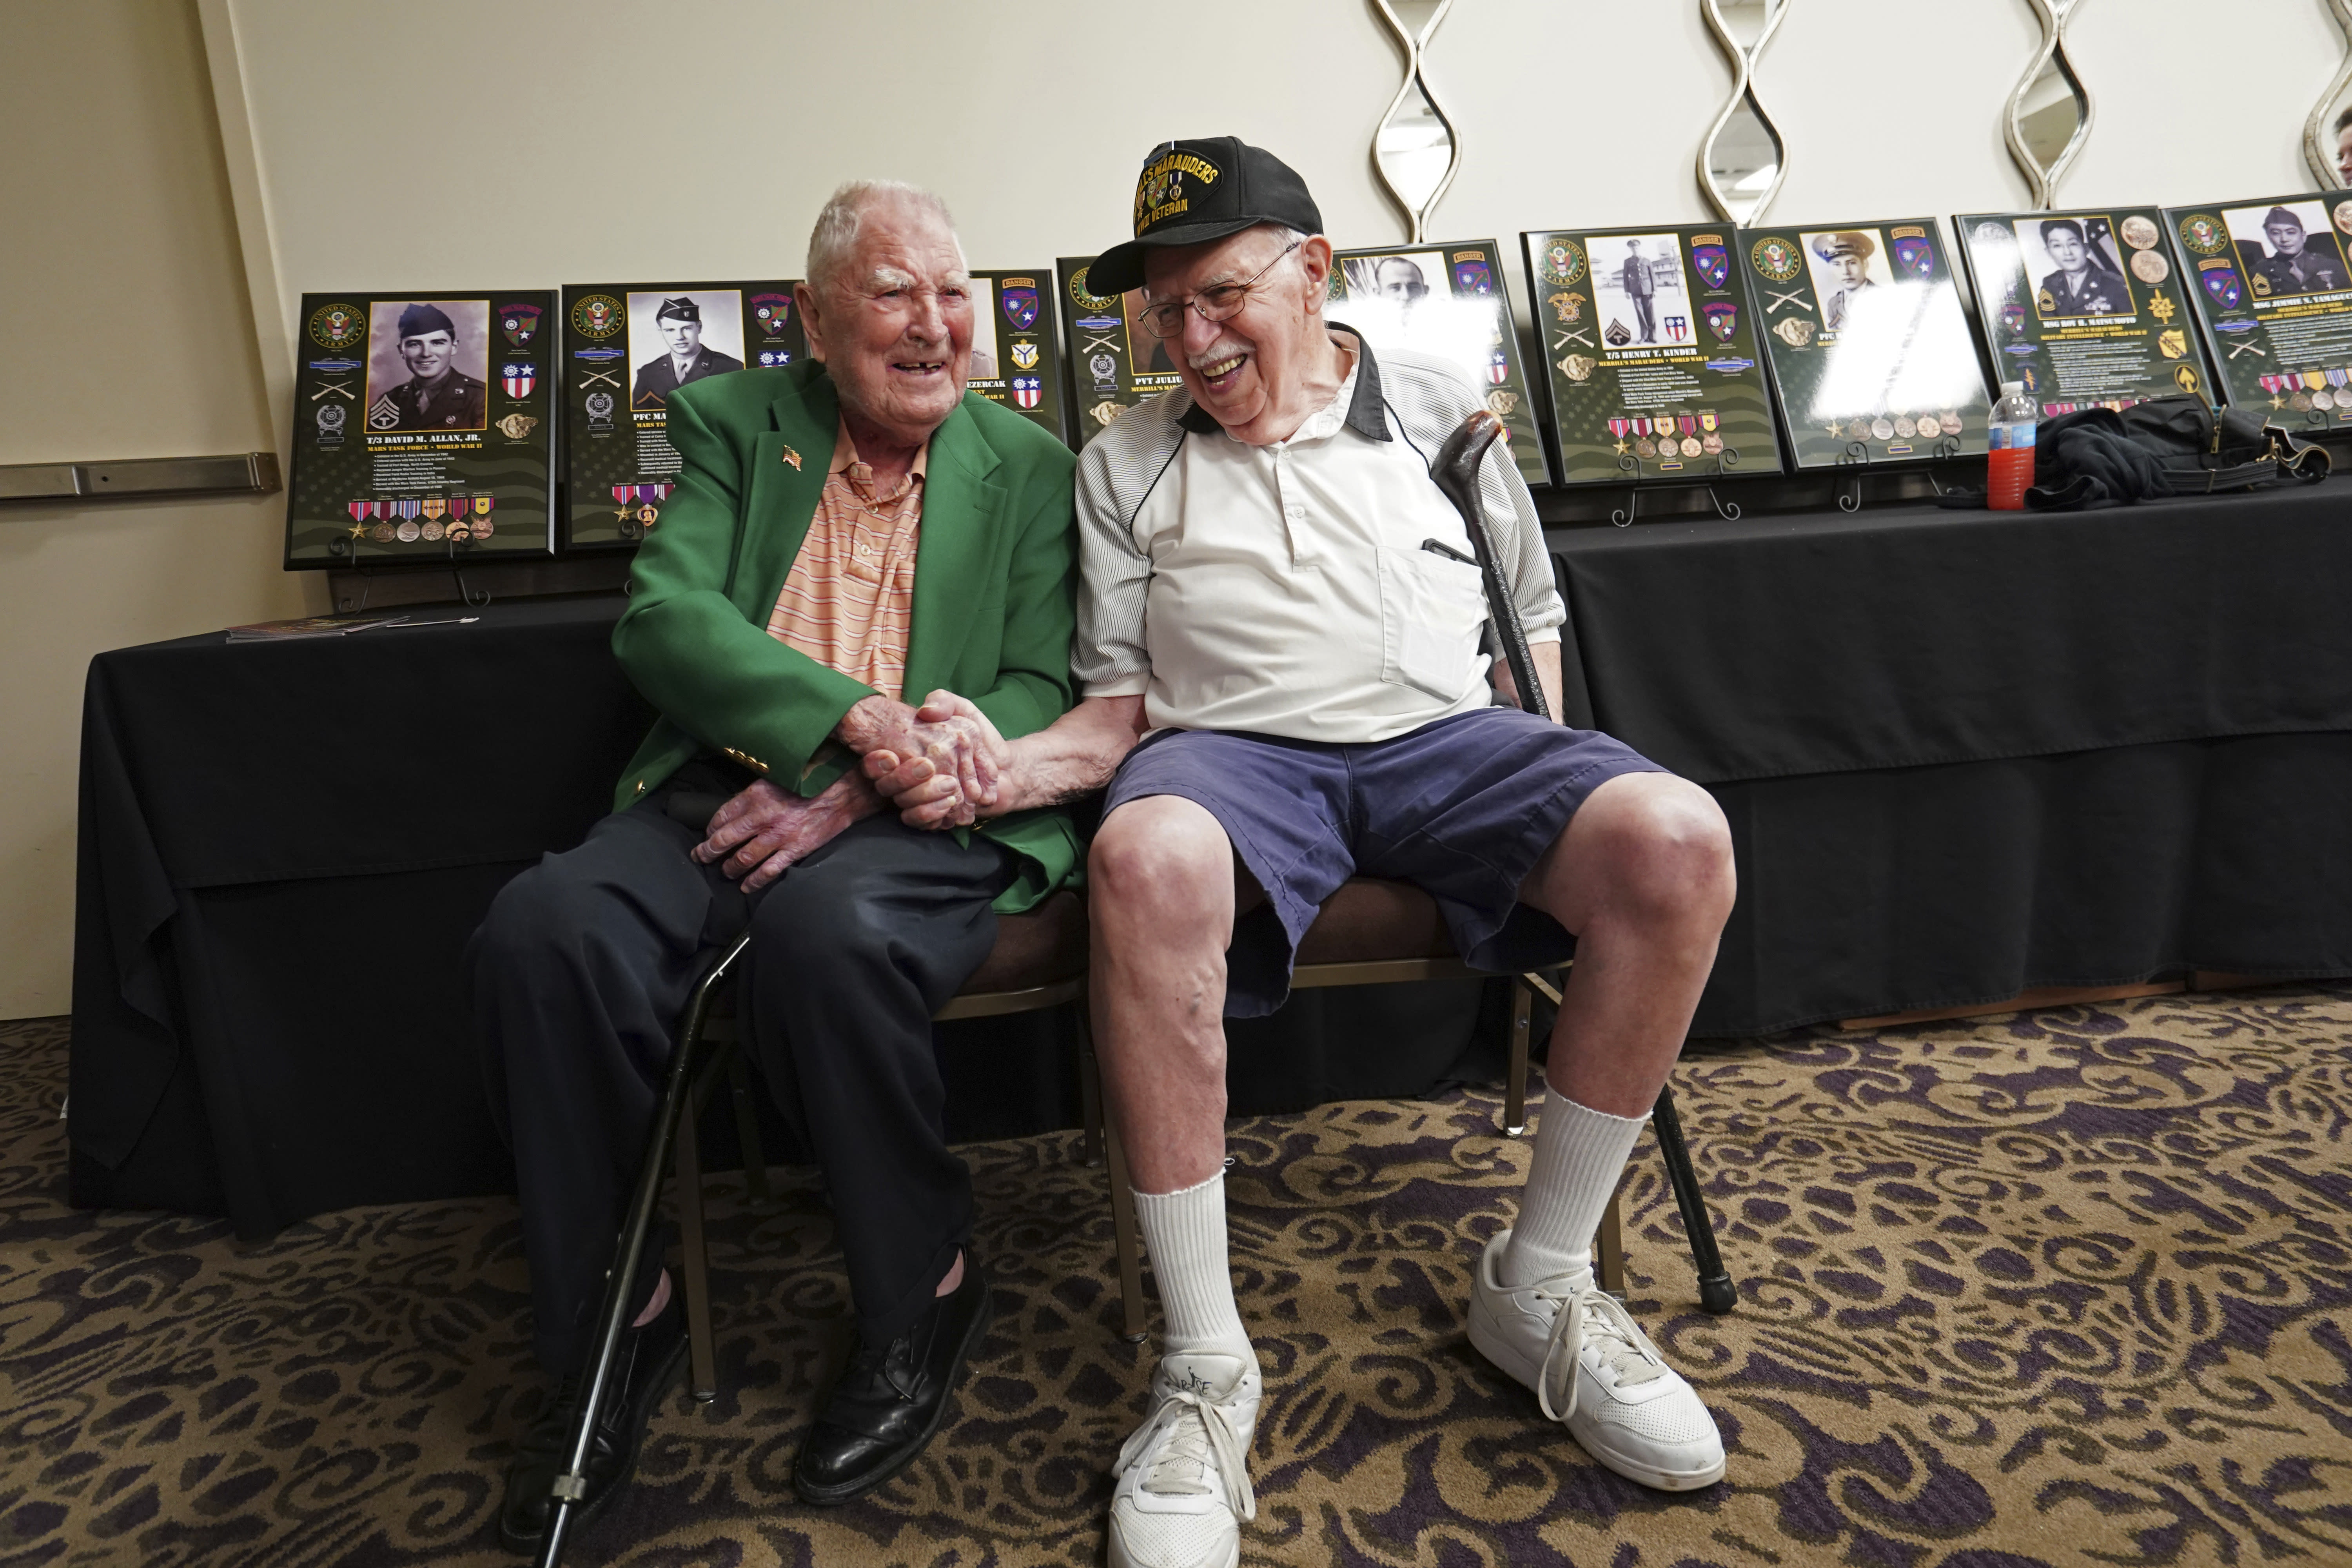 FILE - In this Aug. 28, 2018 file photo, surviving members of the famed WWII Army unit Merrill's Marauders, David Allan, of Rockhill SC, left, and Robert Passanisi, of Lindenhurst NY, shake hands during a gathering of remaining members, family and history buffs, in New Orleans. The unit that spent months marching and fighting behind enemy lines in Burma has been approved to receive the Congressional Gold Medal, Congress' highest honor. Nearly 3,000 soldiers began the unit's secret mission in Japanese occupied Burma in 1944. Barely 200 remained in the fight when their mission was completed five months later. (AP Photo/Gerald Herbert, File)